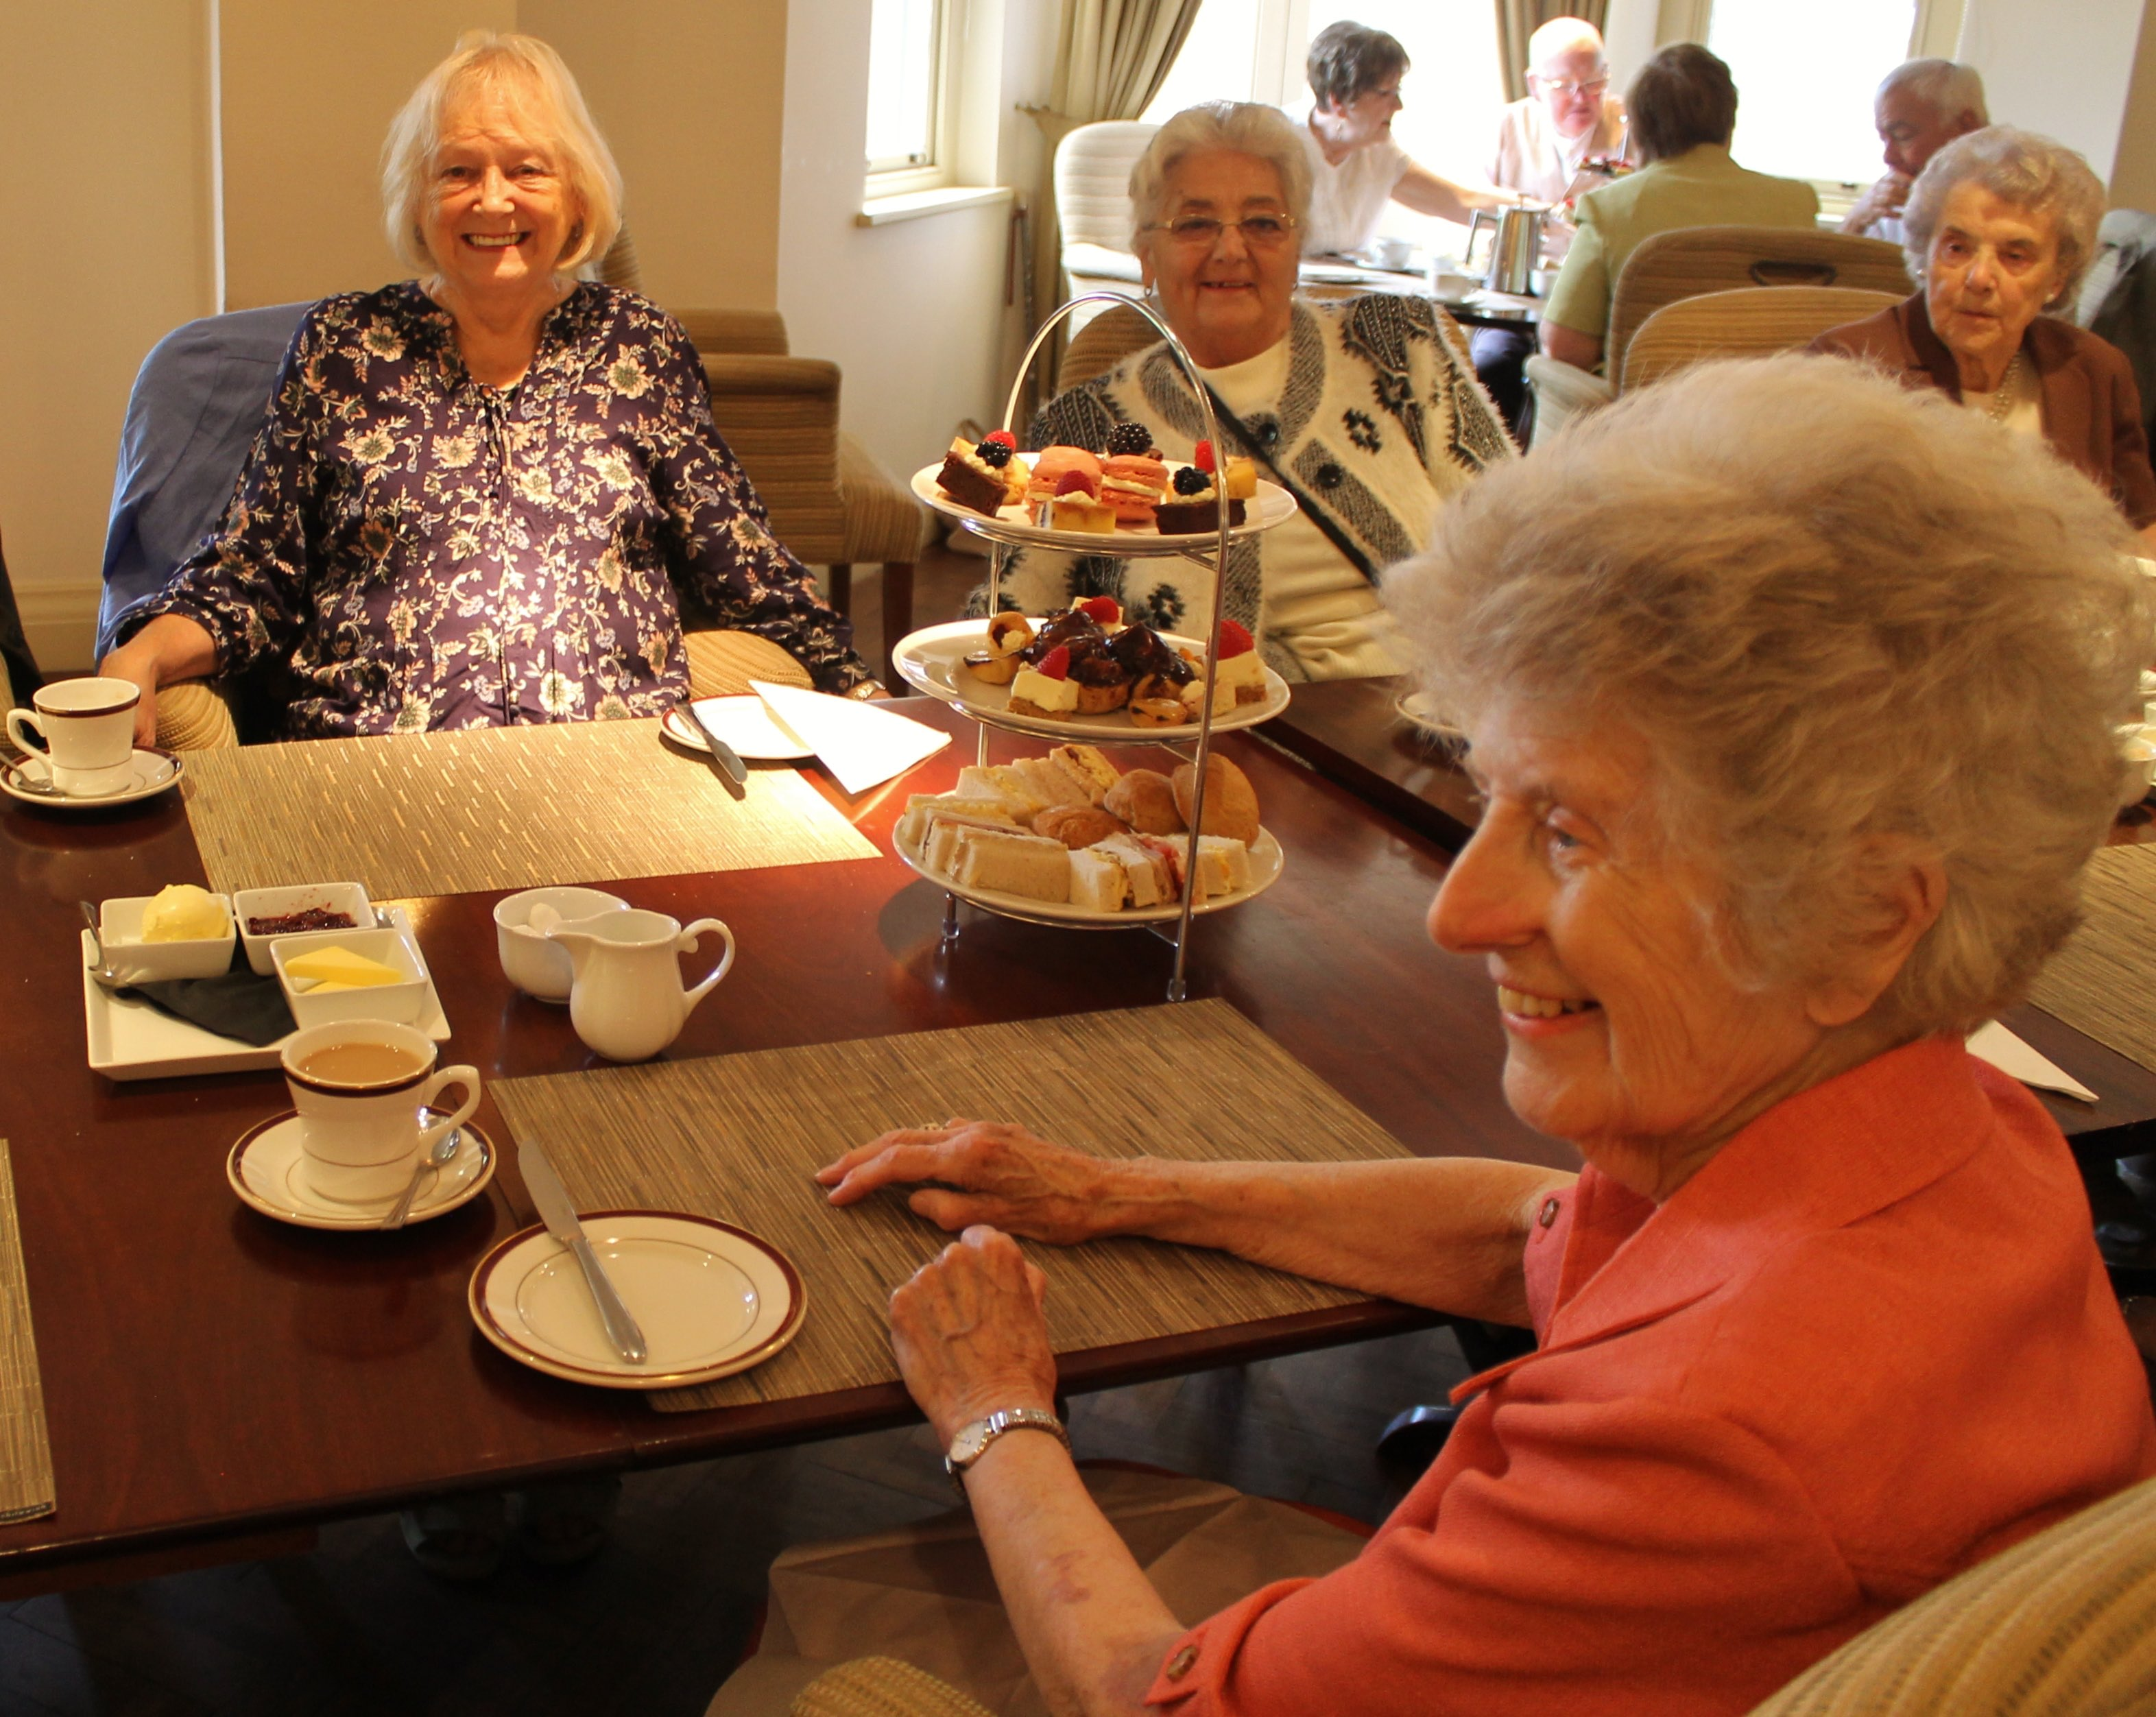 The afternoon tea at Cornhill